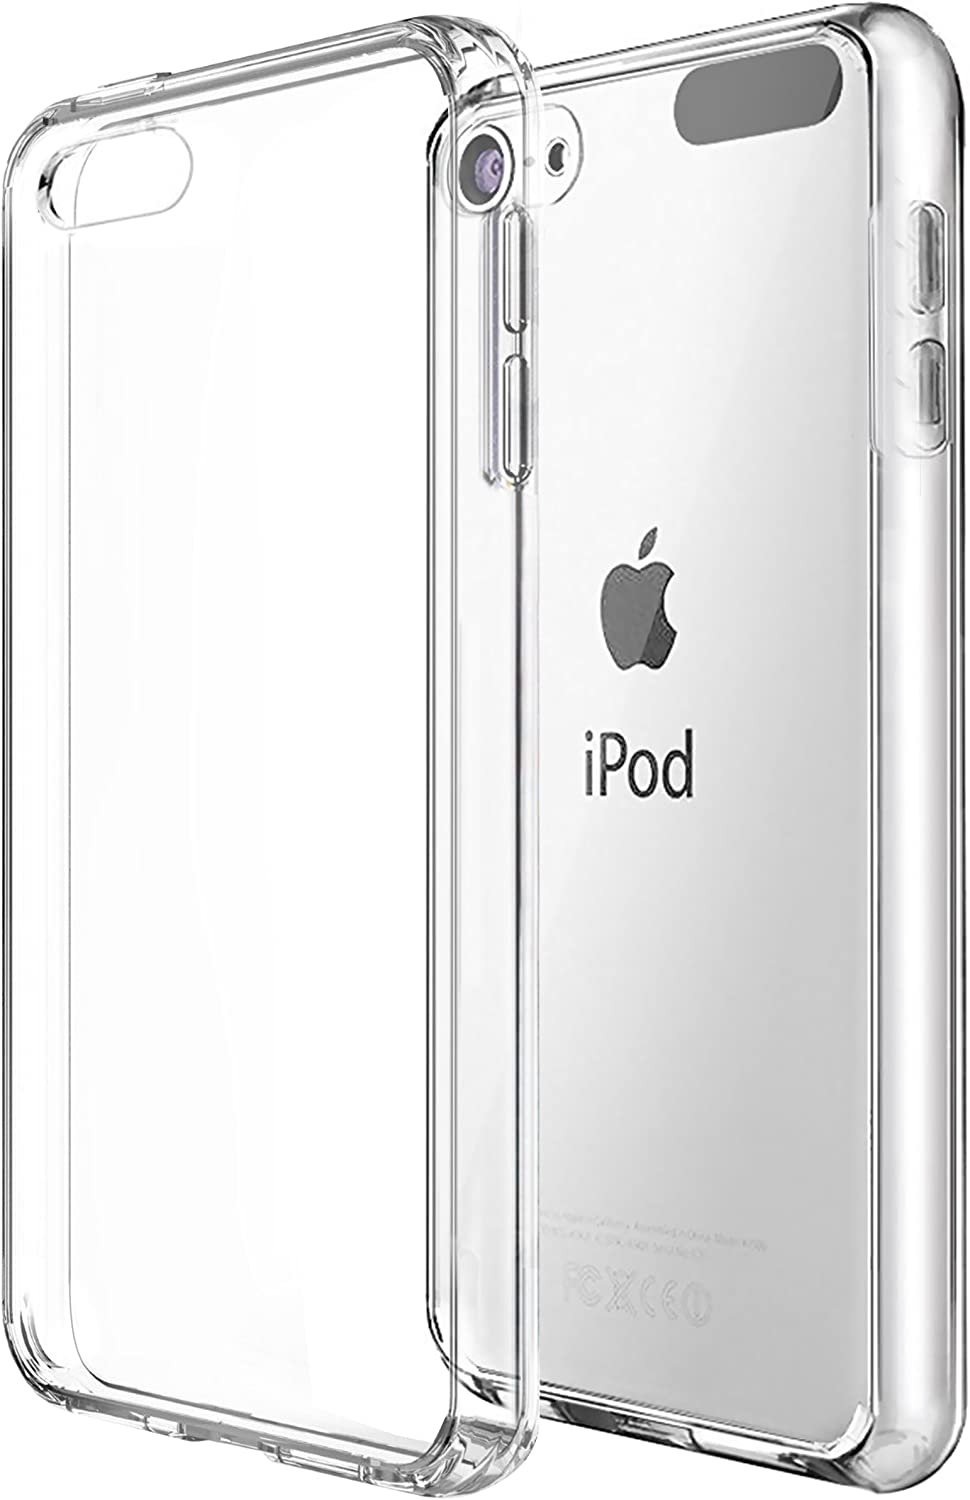 Ailun Phone Case for iPod Touch 7 Touch 6 Touch 5 Soft Bumper TPU Clear Case Slim Lightweight Compatible with iPod Touch 7G 2019 Released 6G 2015 Released 5G Crystal Clear